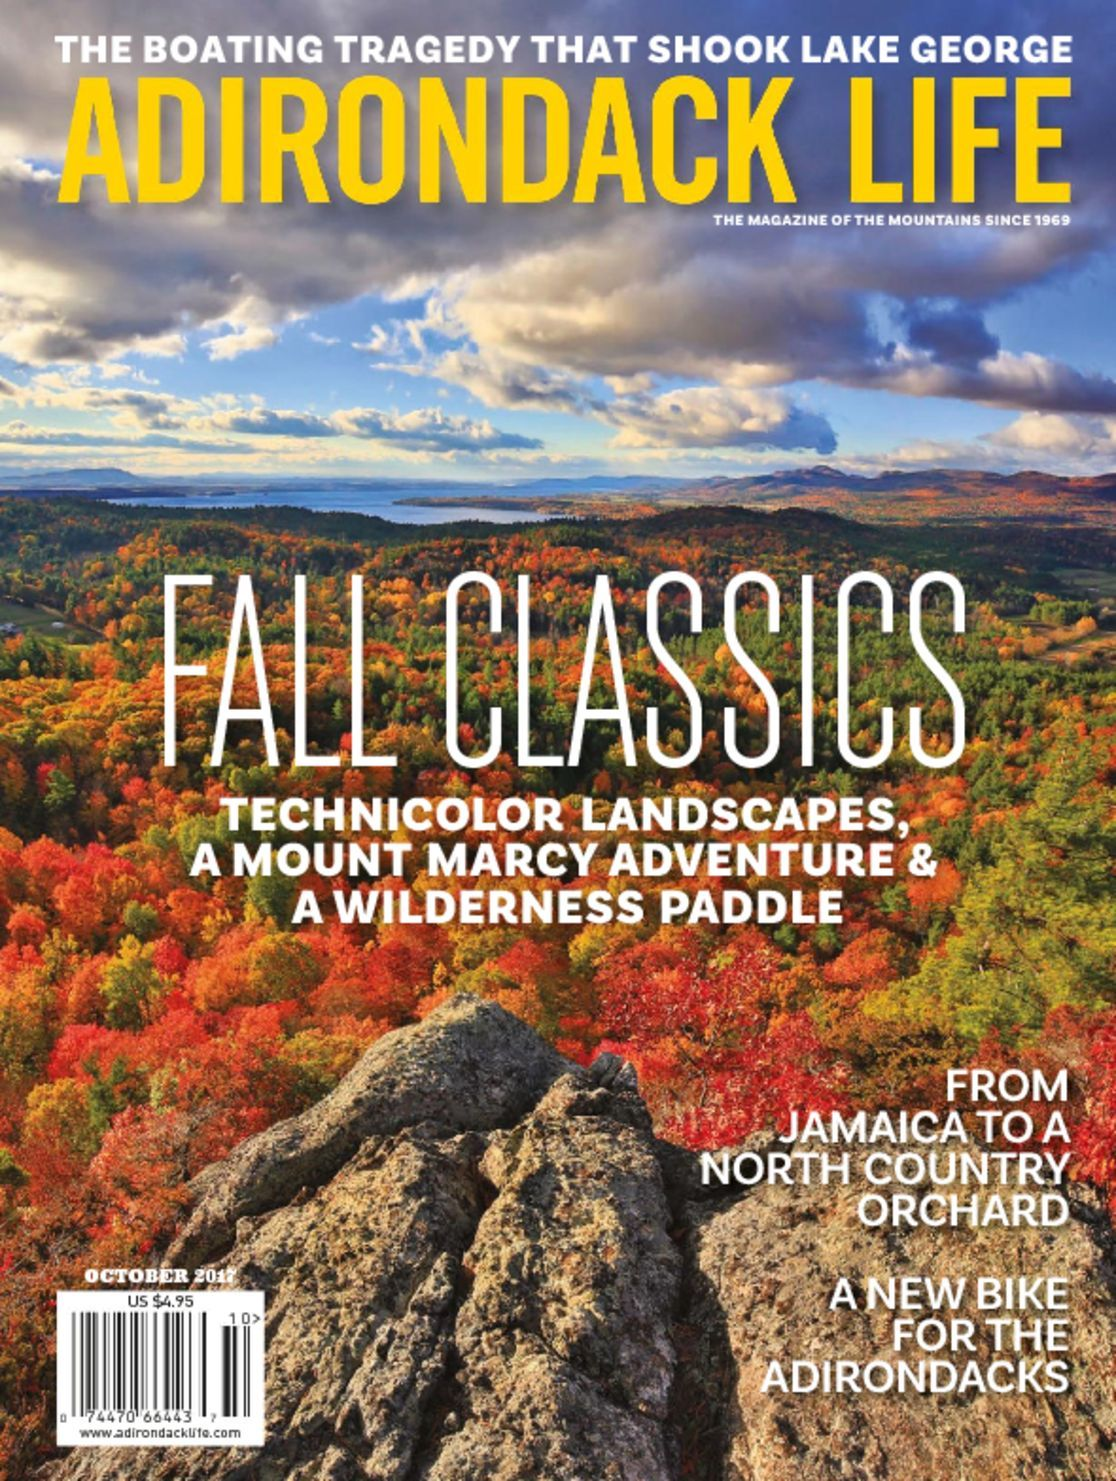 Adirondack Life Magazine Subscription